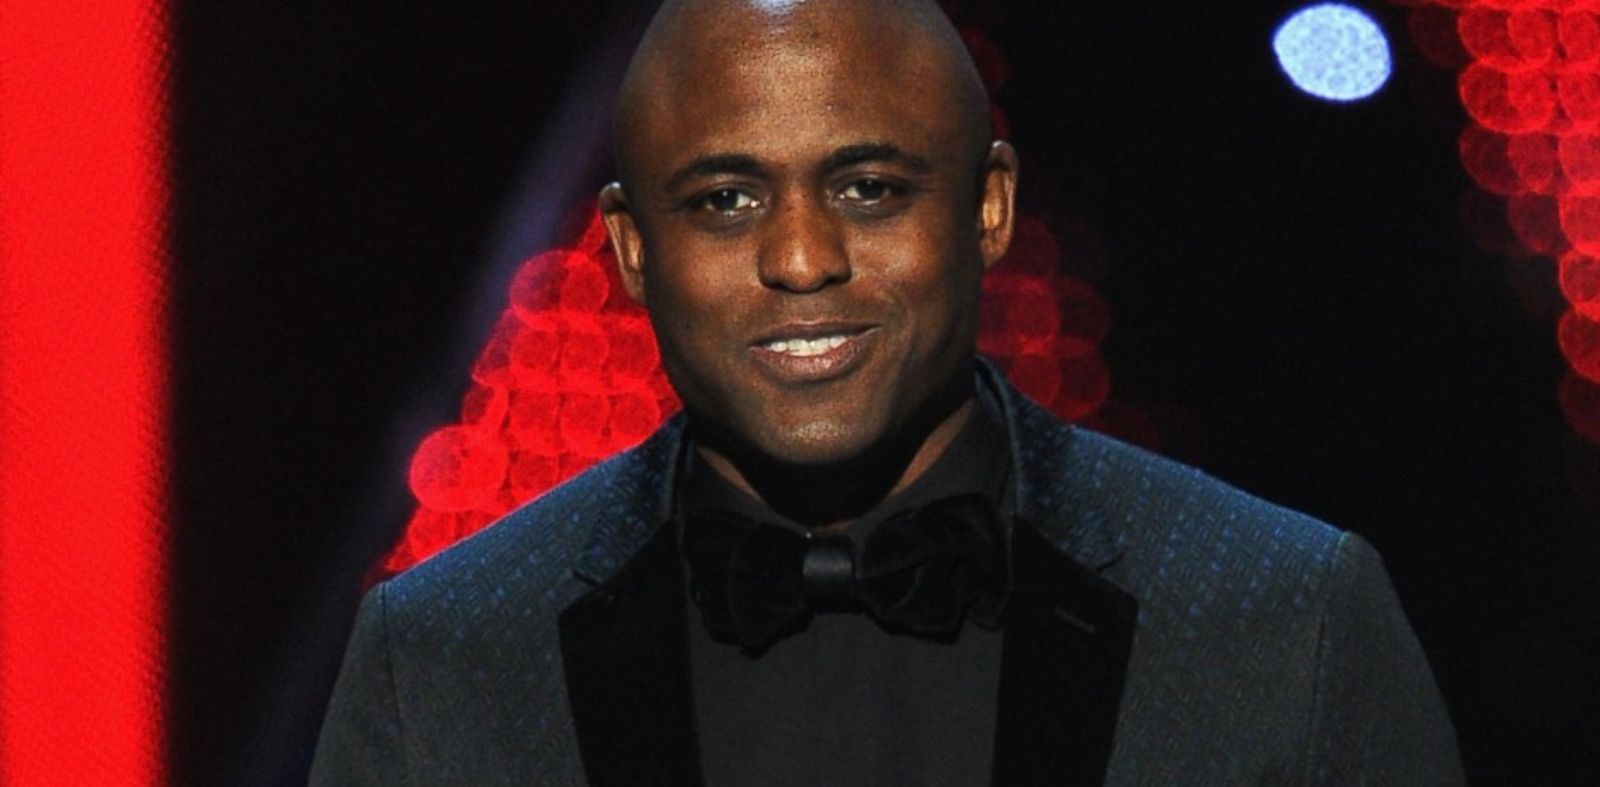 wayne brady michelle obama